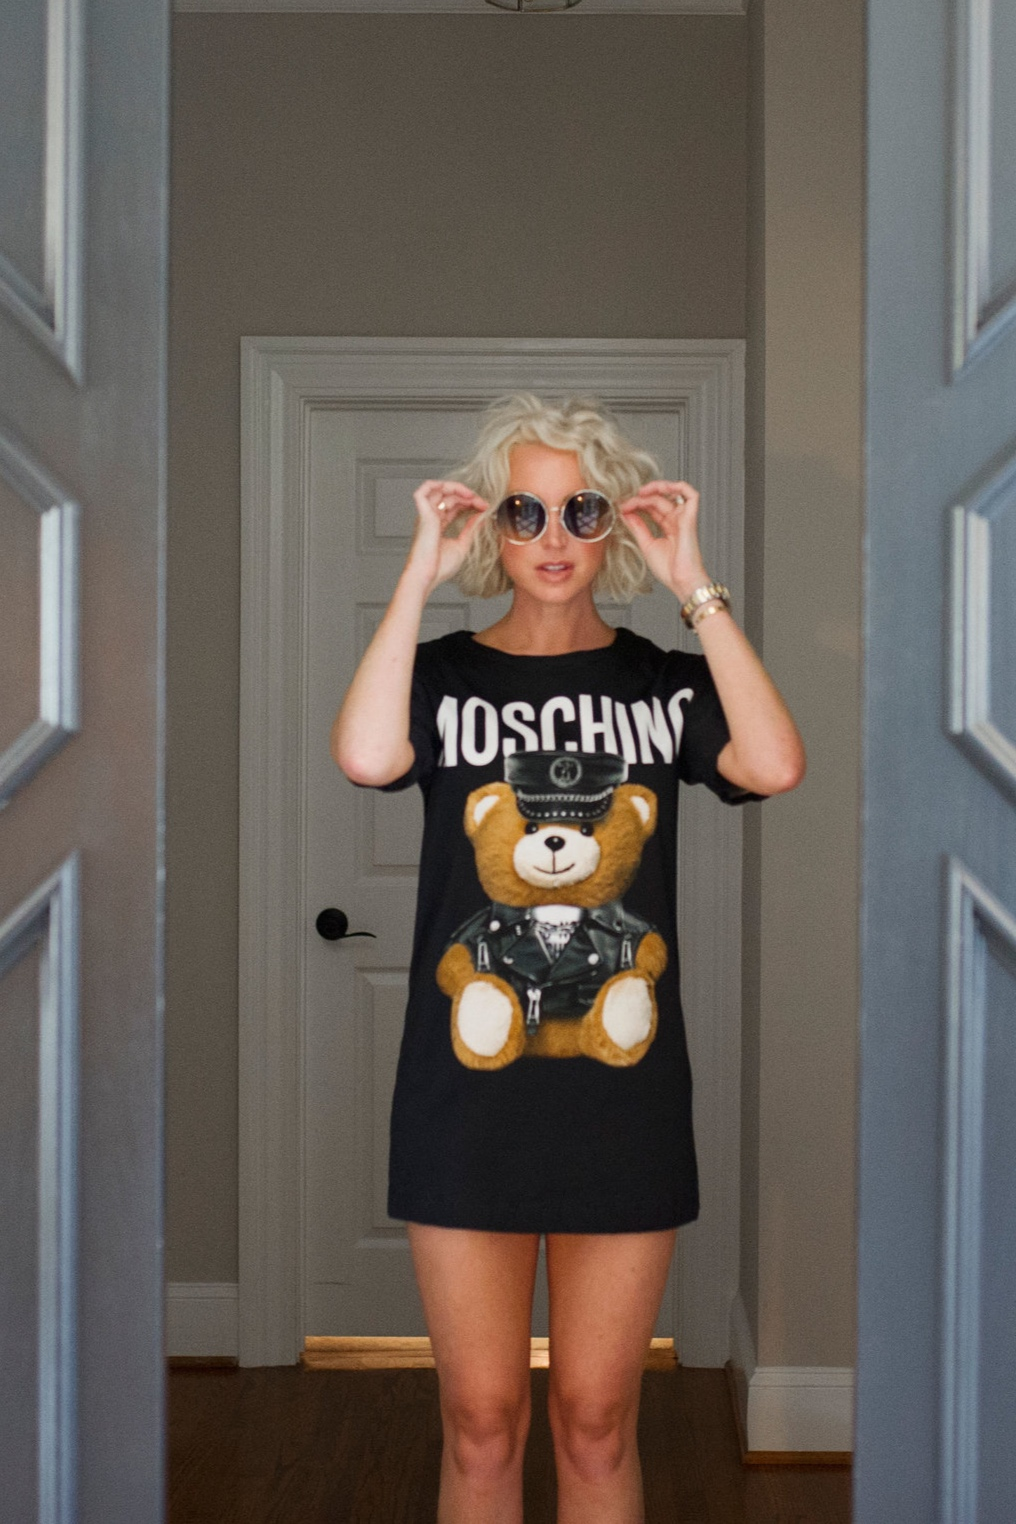 I'm a sucker for a good t-shirt dress especially if it means having a piece of that eccentric Moschino teddy bear logo. - The dress is from Jeremy Scott's AW16 collection and features the Moschino teddy bear icon.